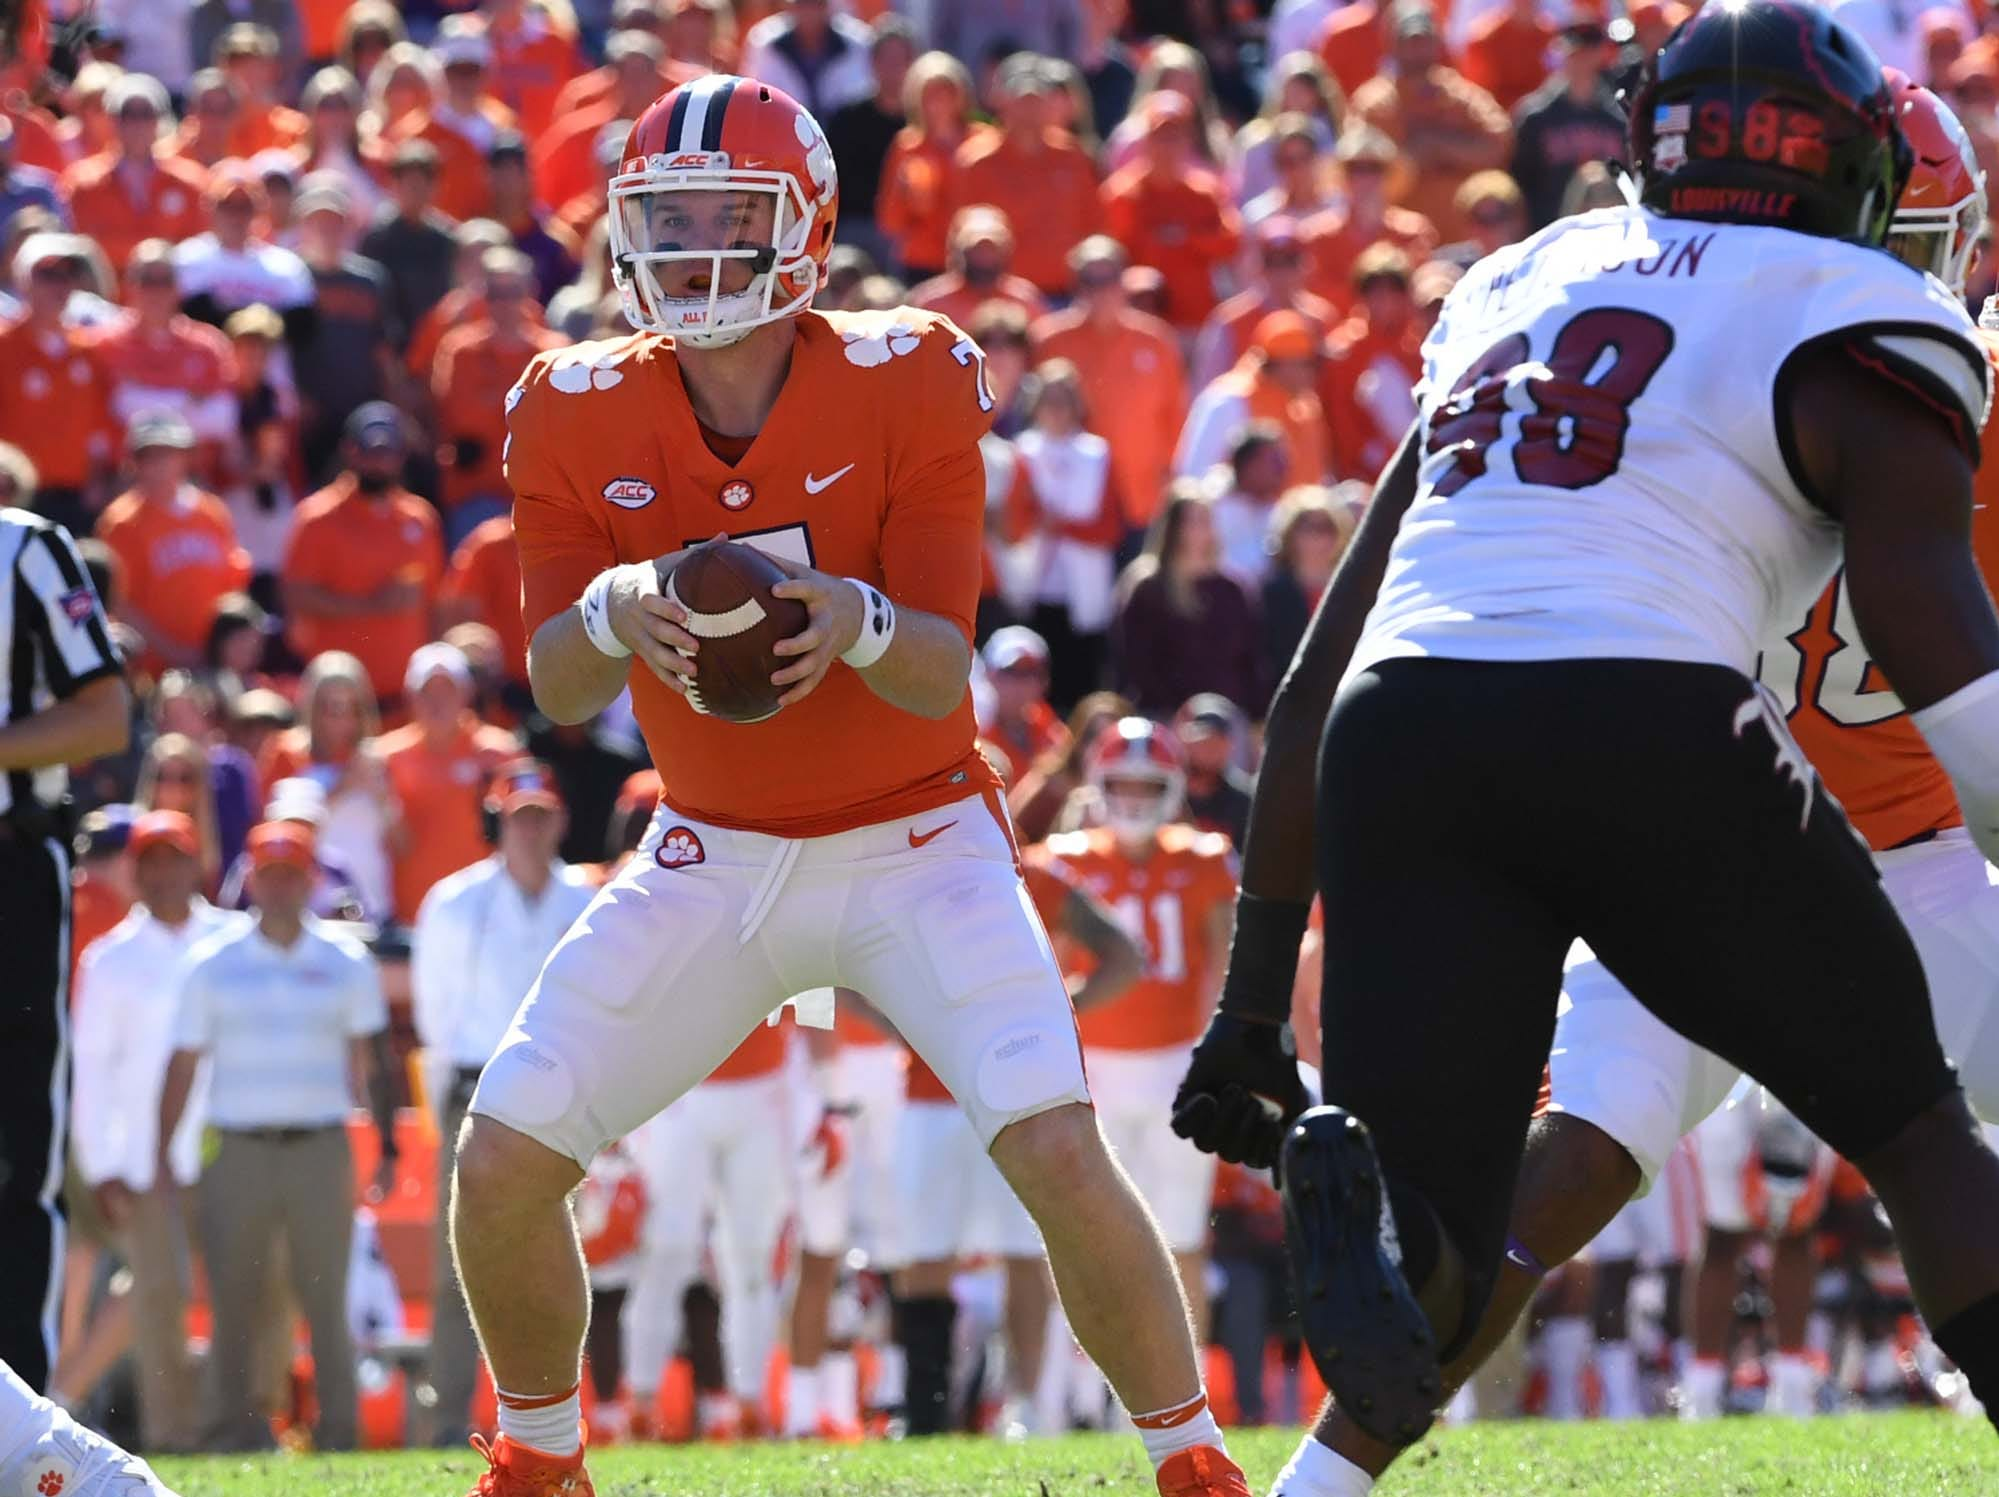 Clemson quarterback Chase Brice (7) takes a snap near Louisville defensive end Tabarius Peterson(98) during the fourth quarter in Memorial Stadium on Saturday, November 3, 2018.